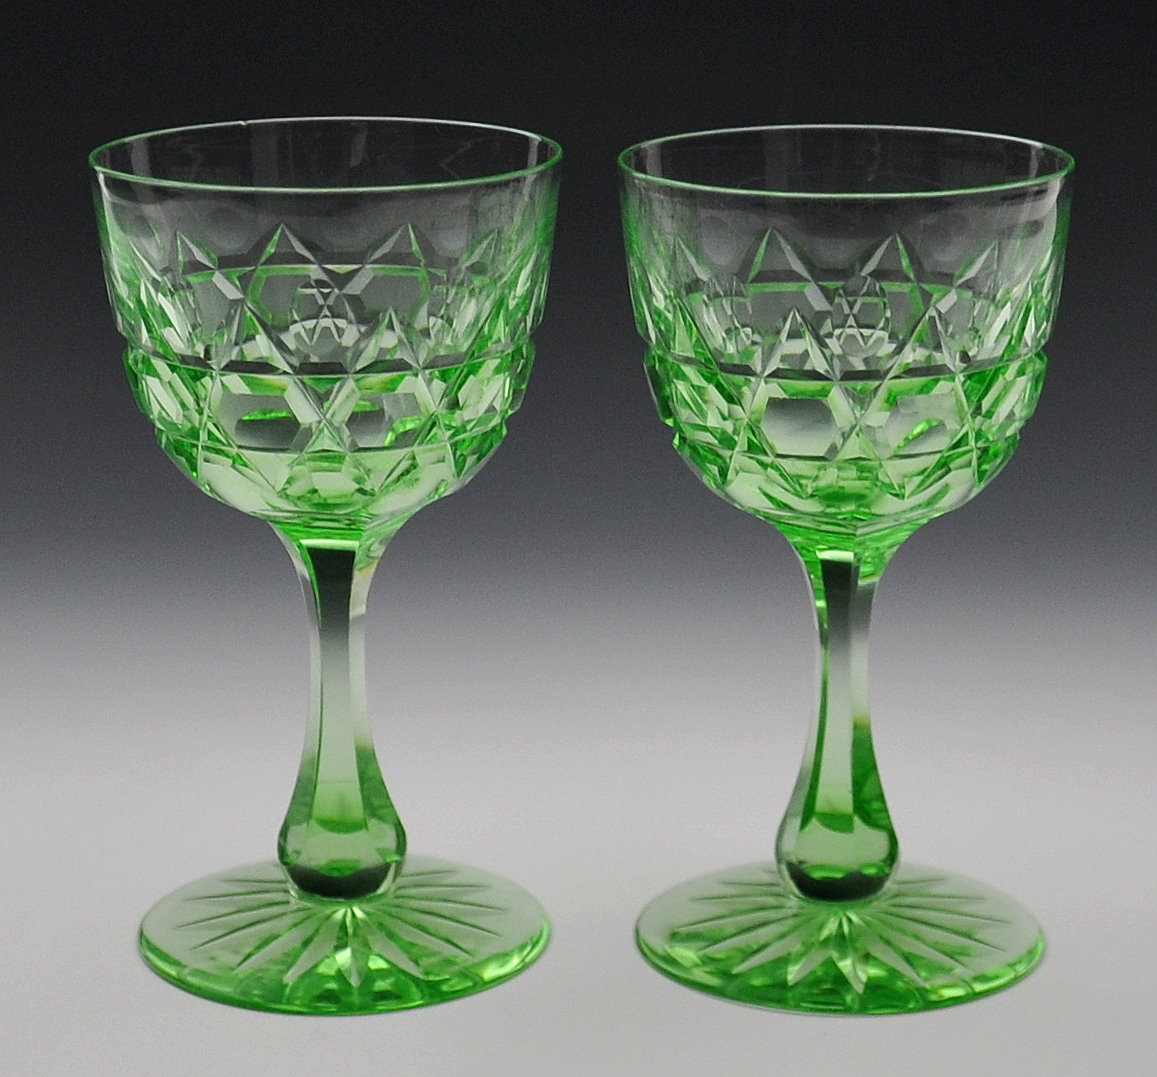 Pair of Solid Green Glass Clarets - FSG1013 Image